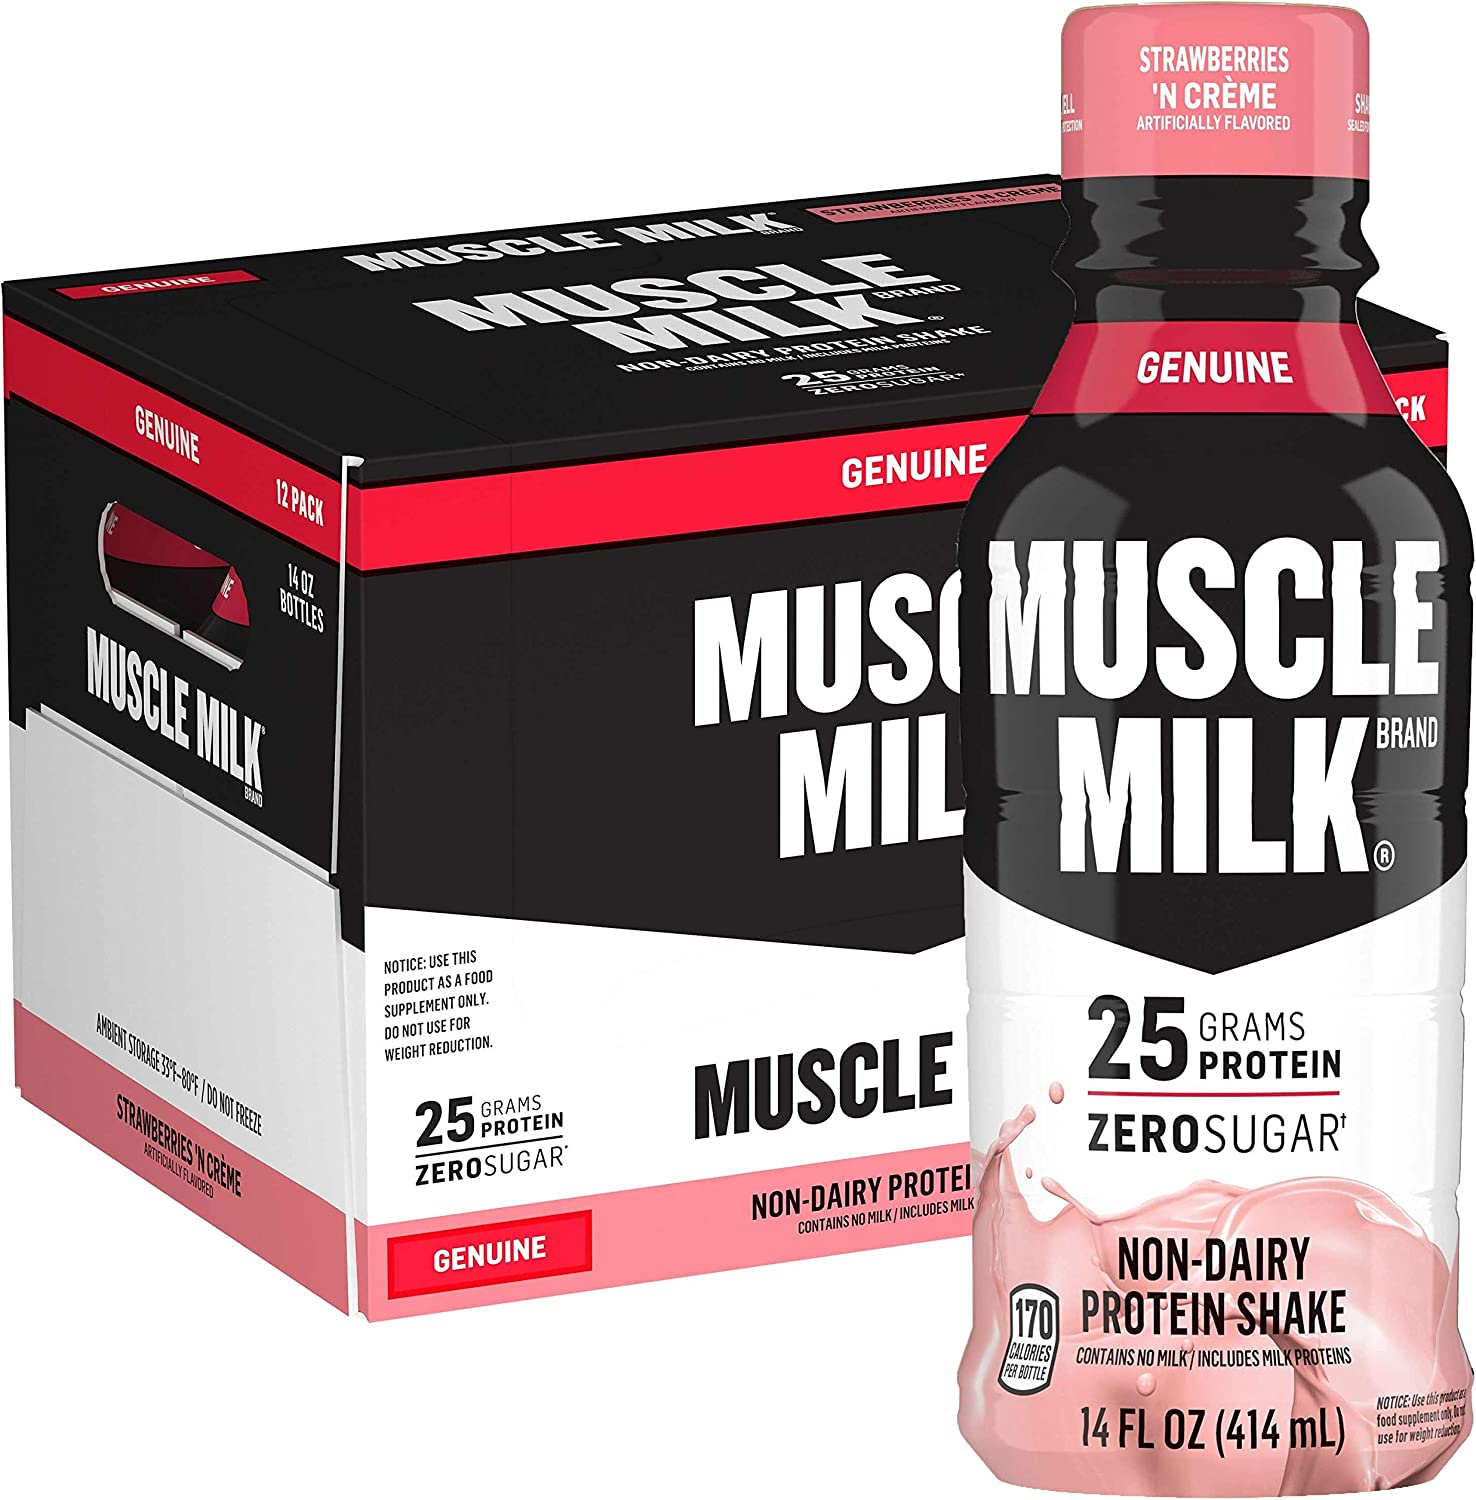 Muscle Milk Genuine Protein Shake, Strawberries 'N Crème, 25g Protein, 14 Fl Oz, 12 Pack: Health & Personal Care